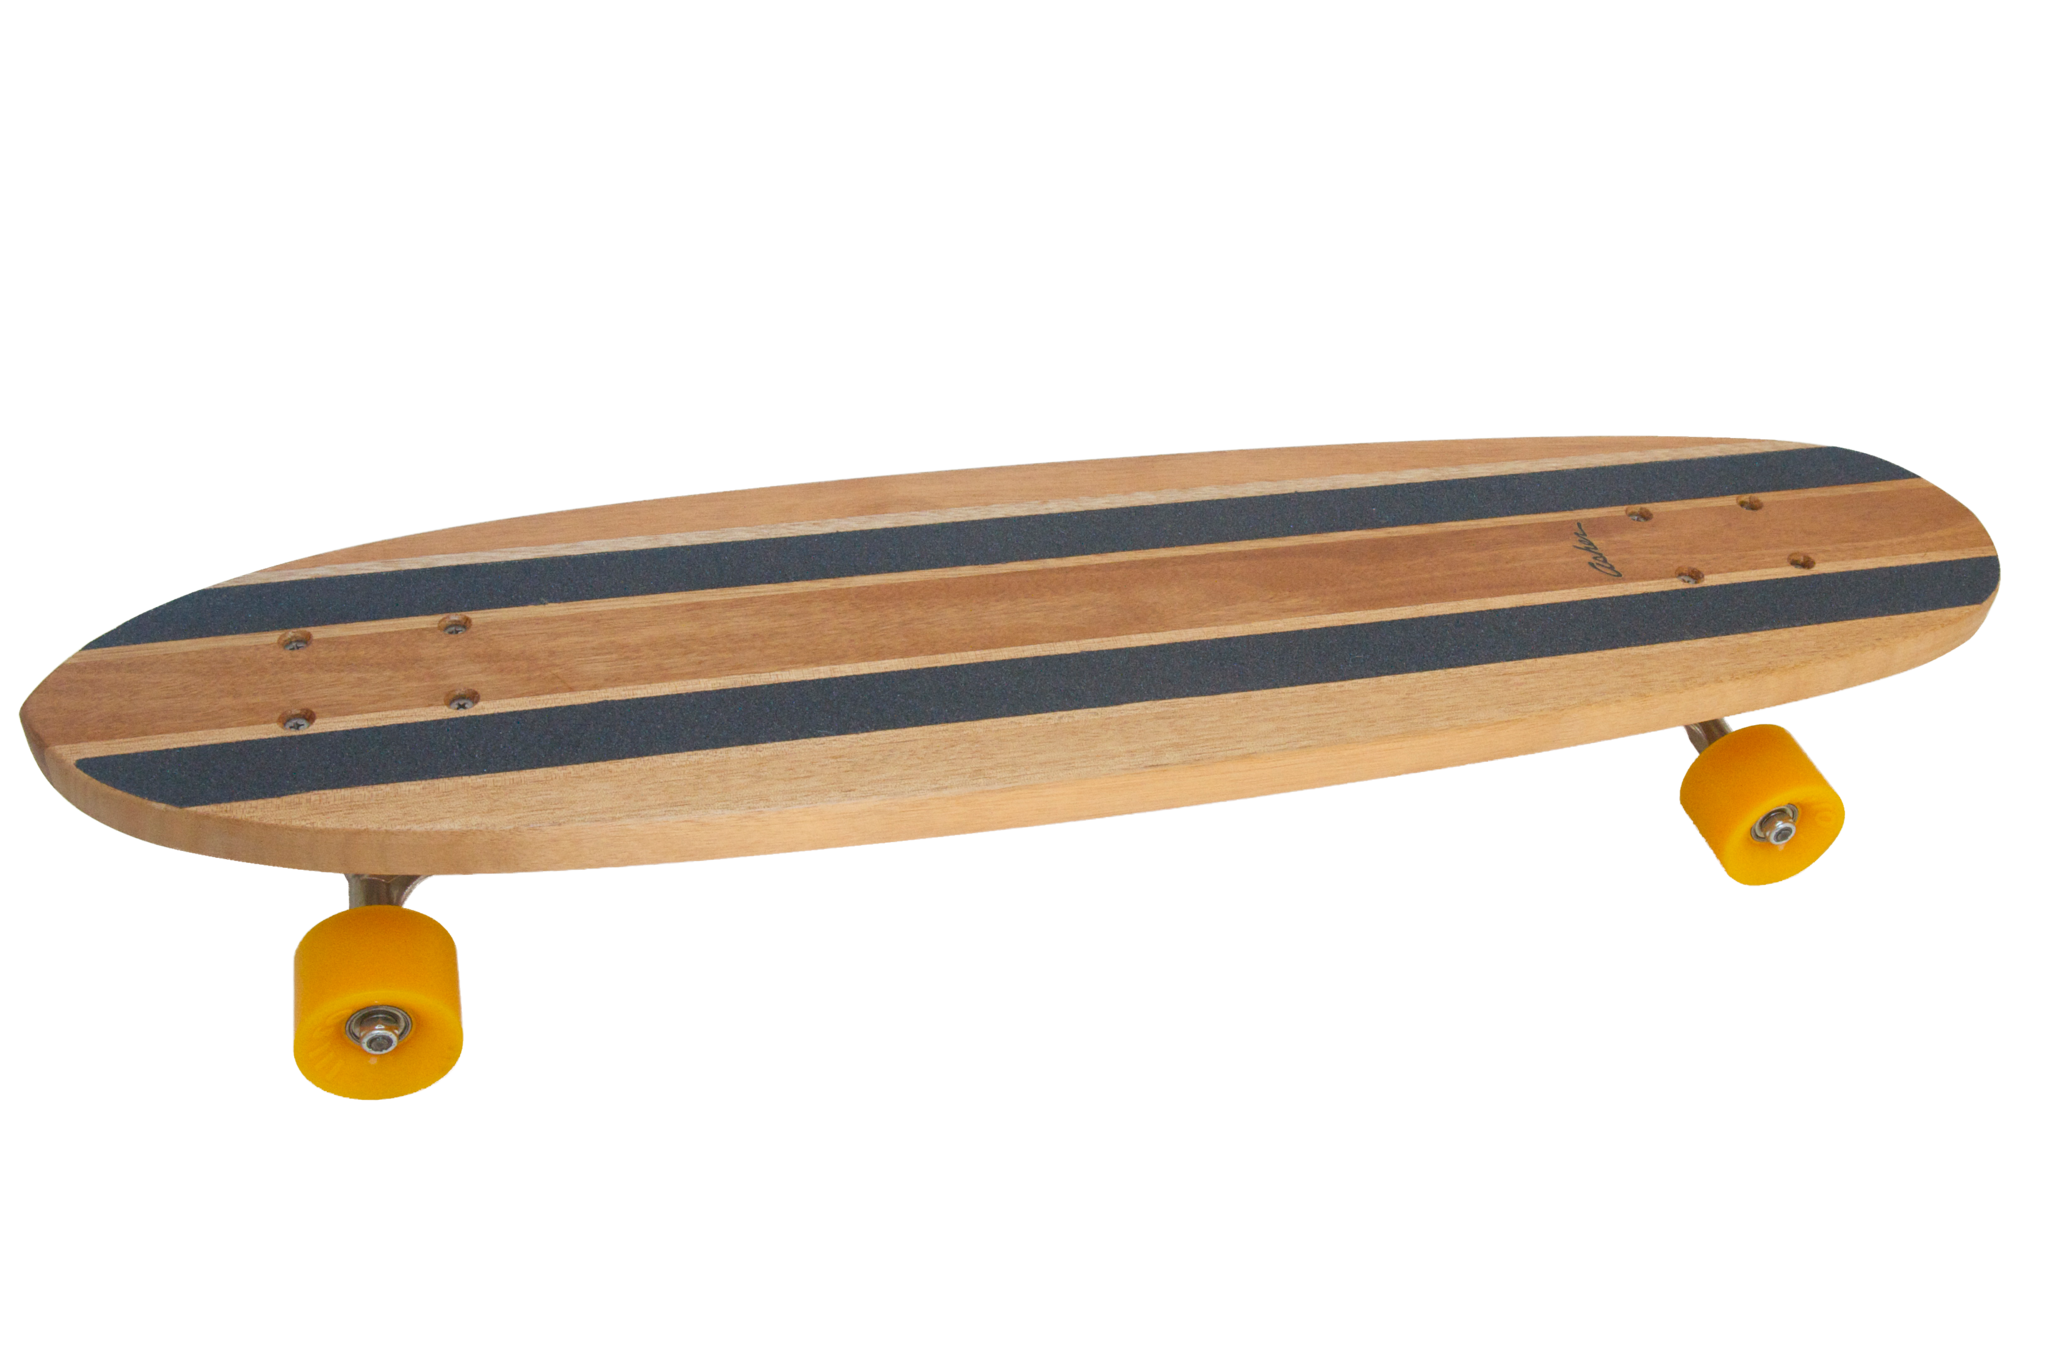 Png images free download. Green clipart skateboard